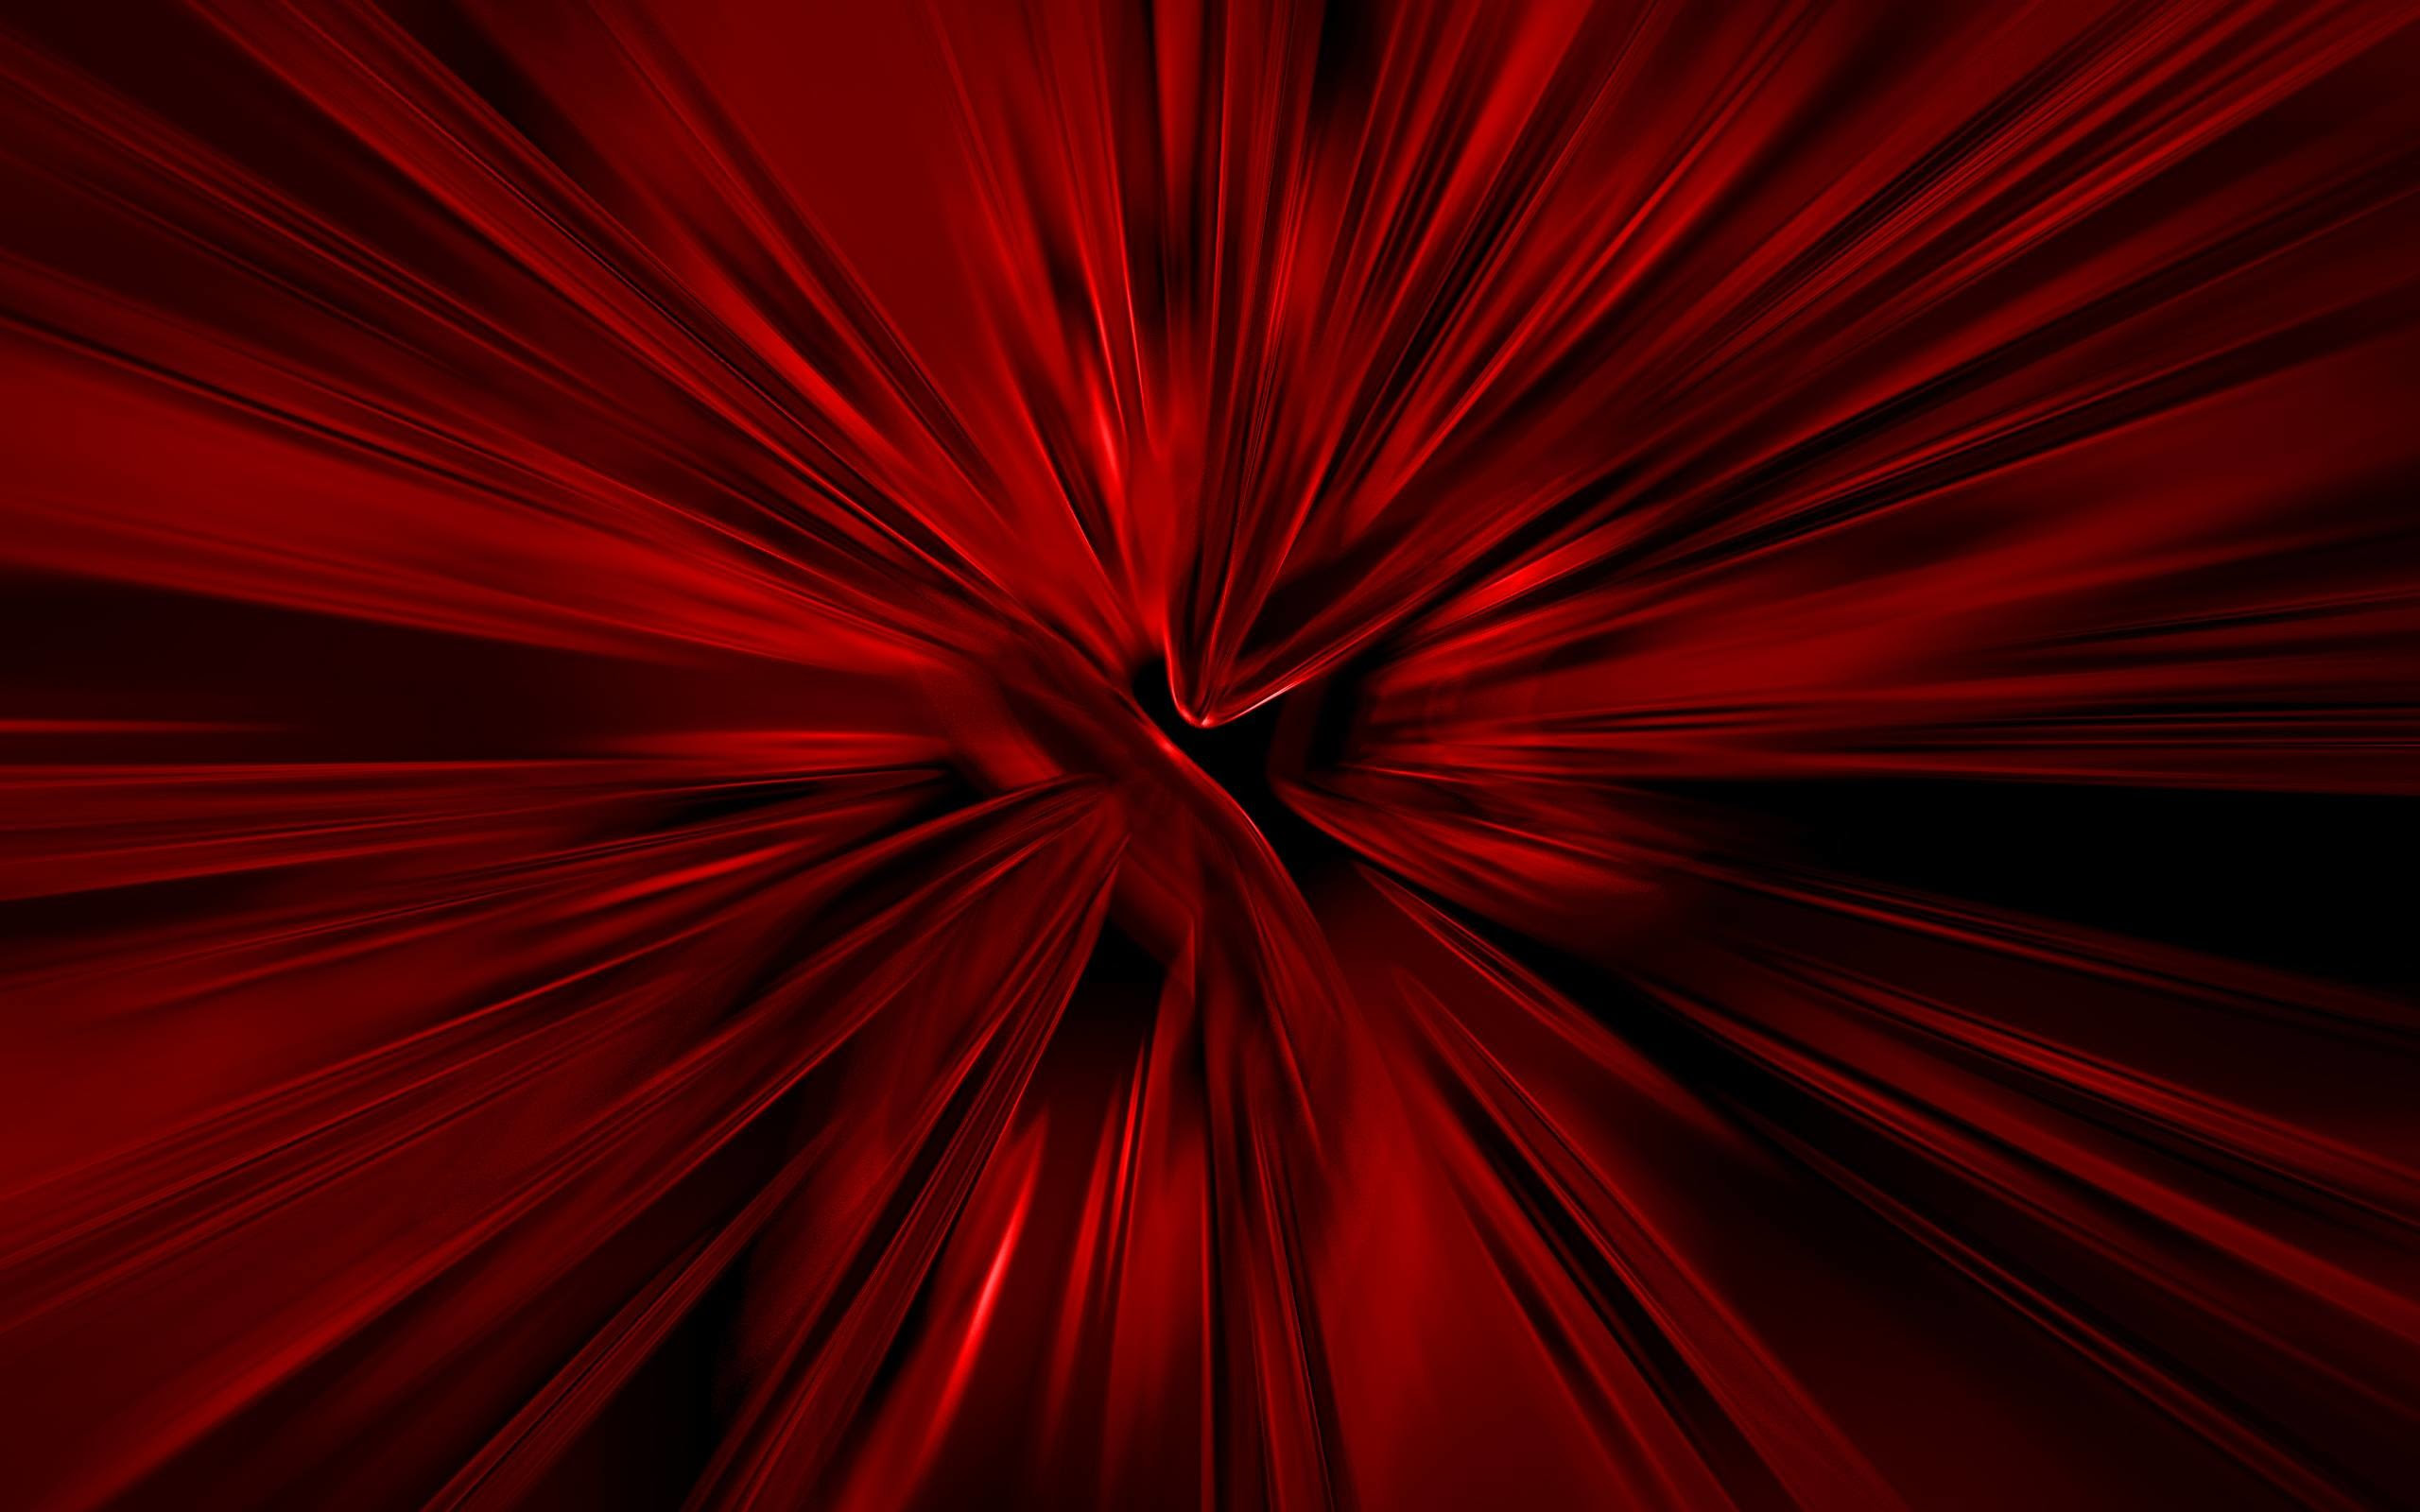 Aesthetic High Resolution Red And Black Background Largest Wallpaper Portal